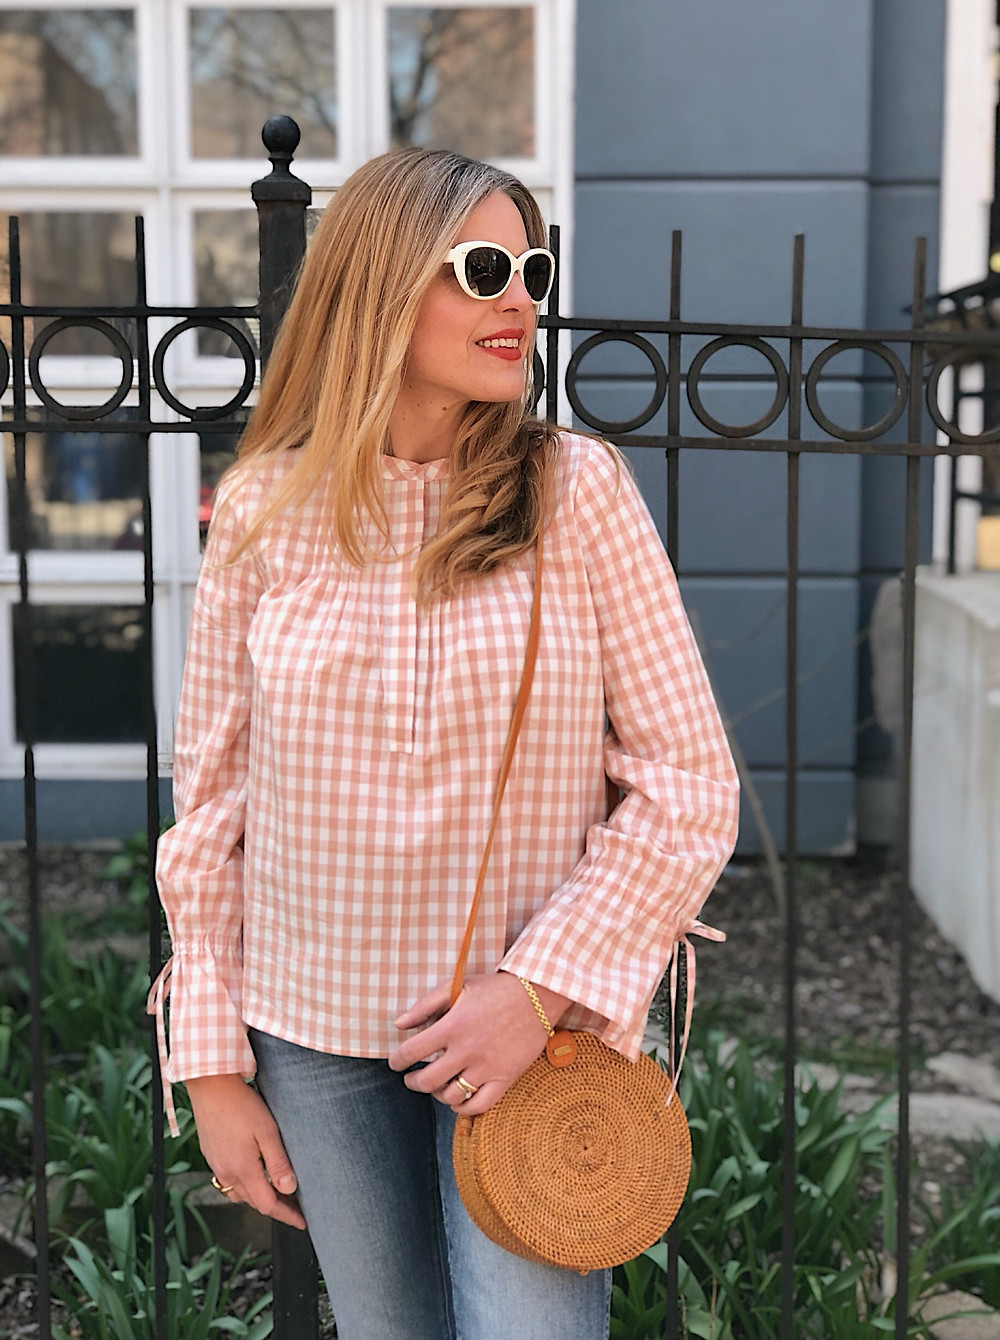 blond woman, white sunglasses, blush gingham top, jeans, straw bag